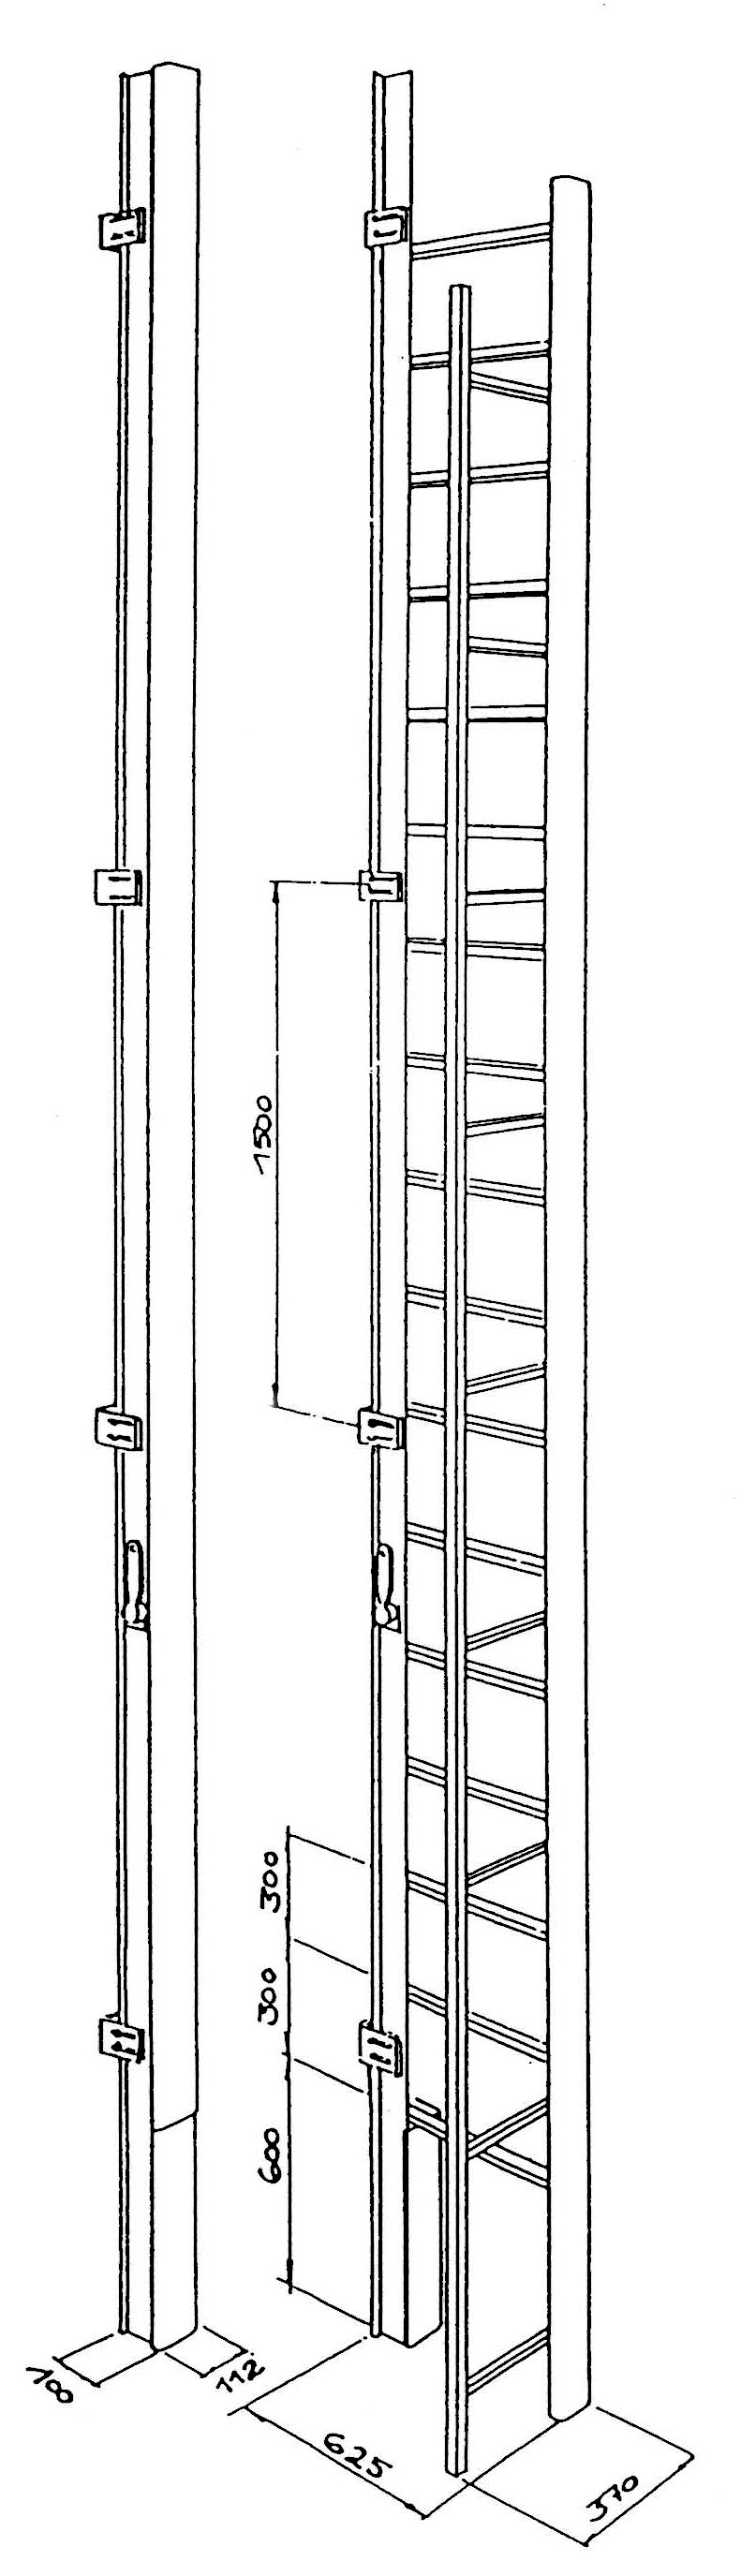 Specification plan for a JOMY ladder